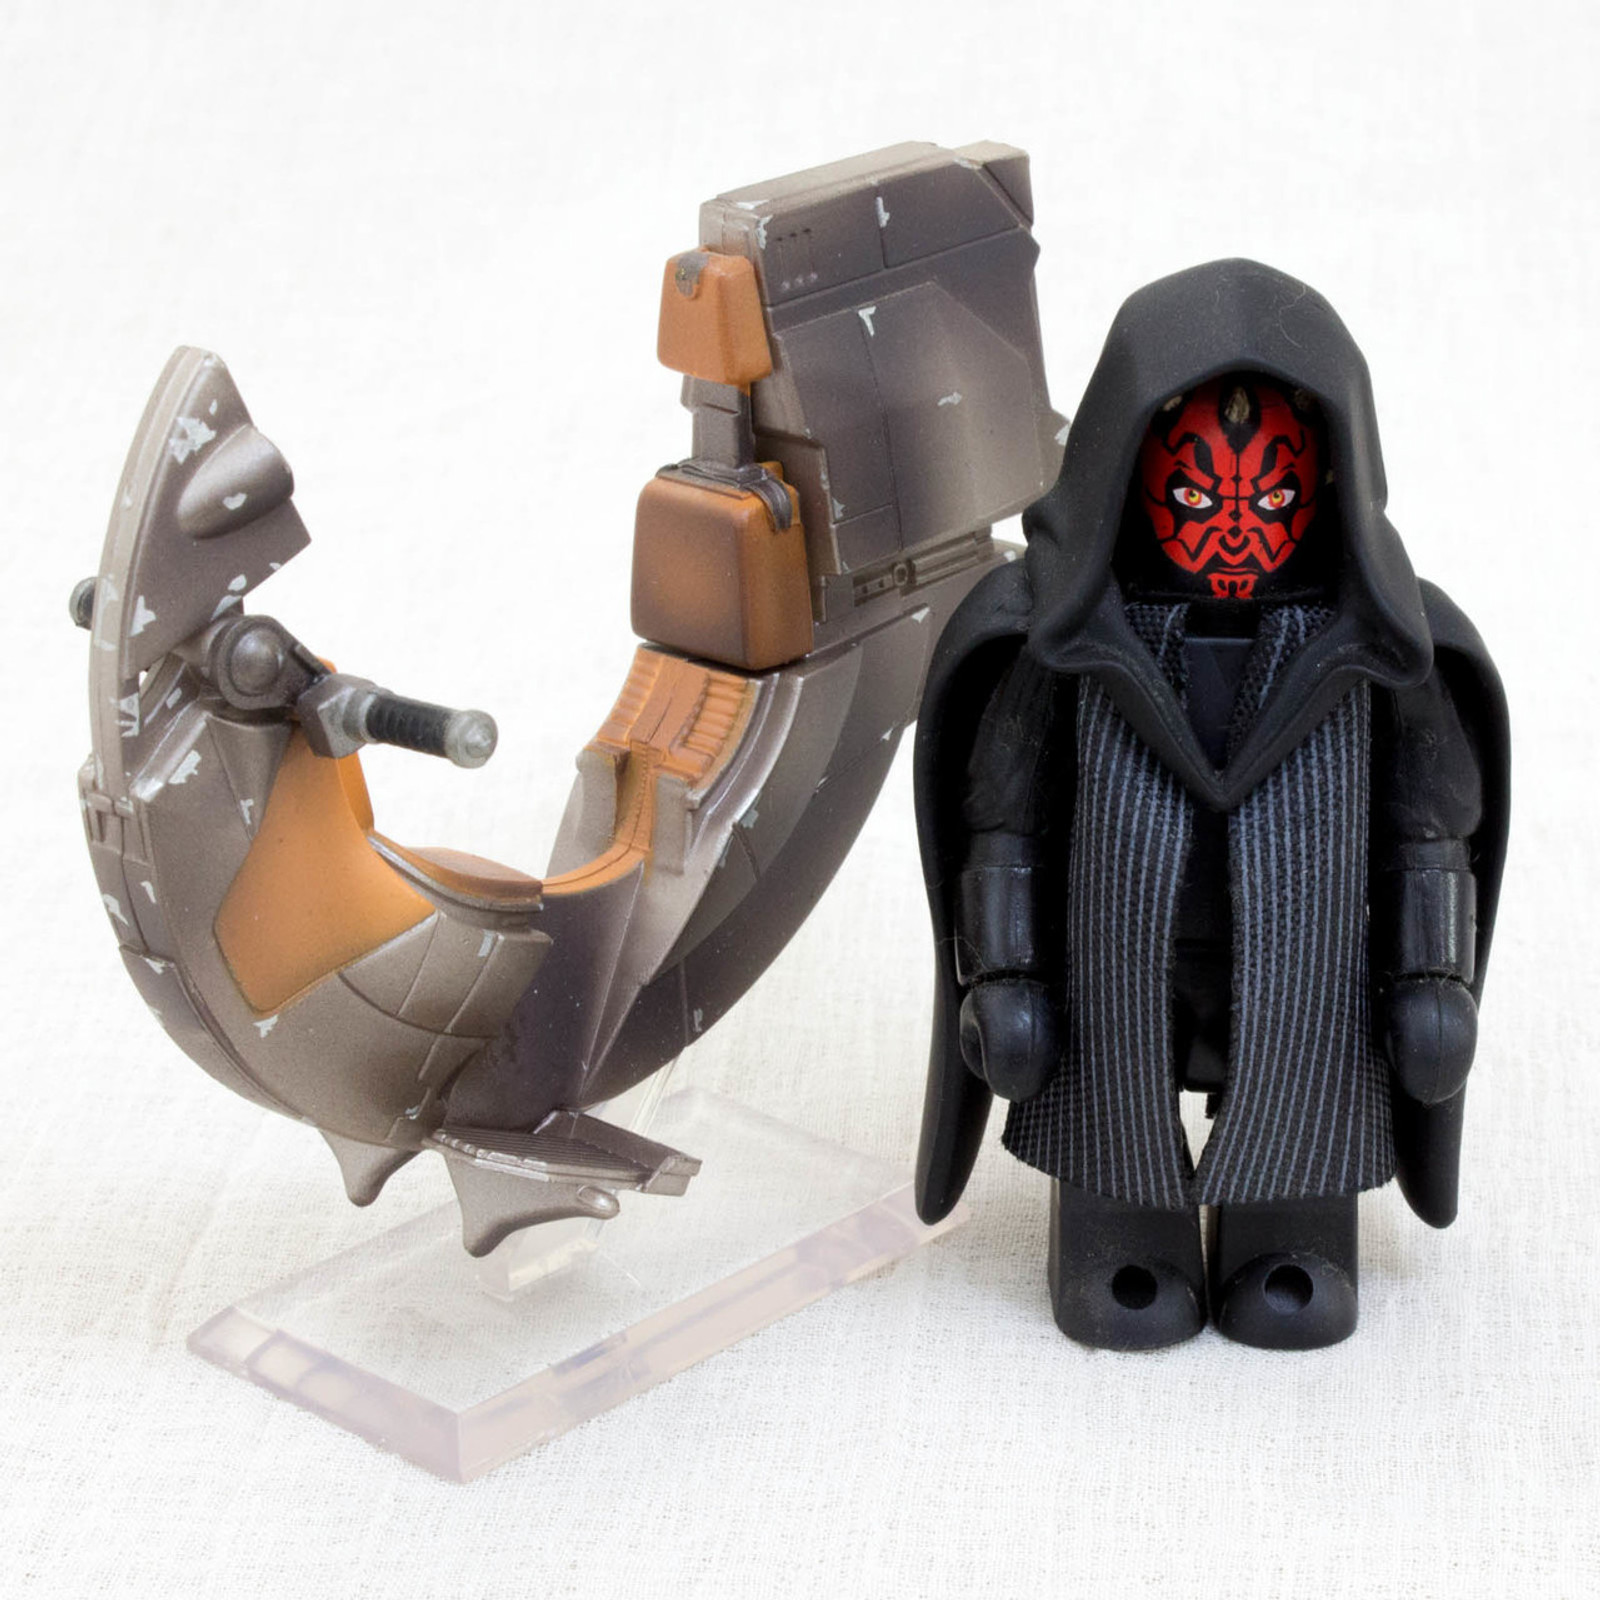 STAR WARS Darth Maul Sith Speeder Figure Set Medicom Toy JAPAN MOVIE